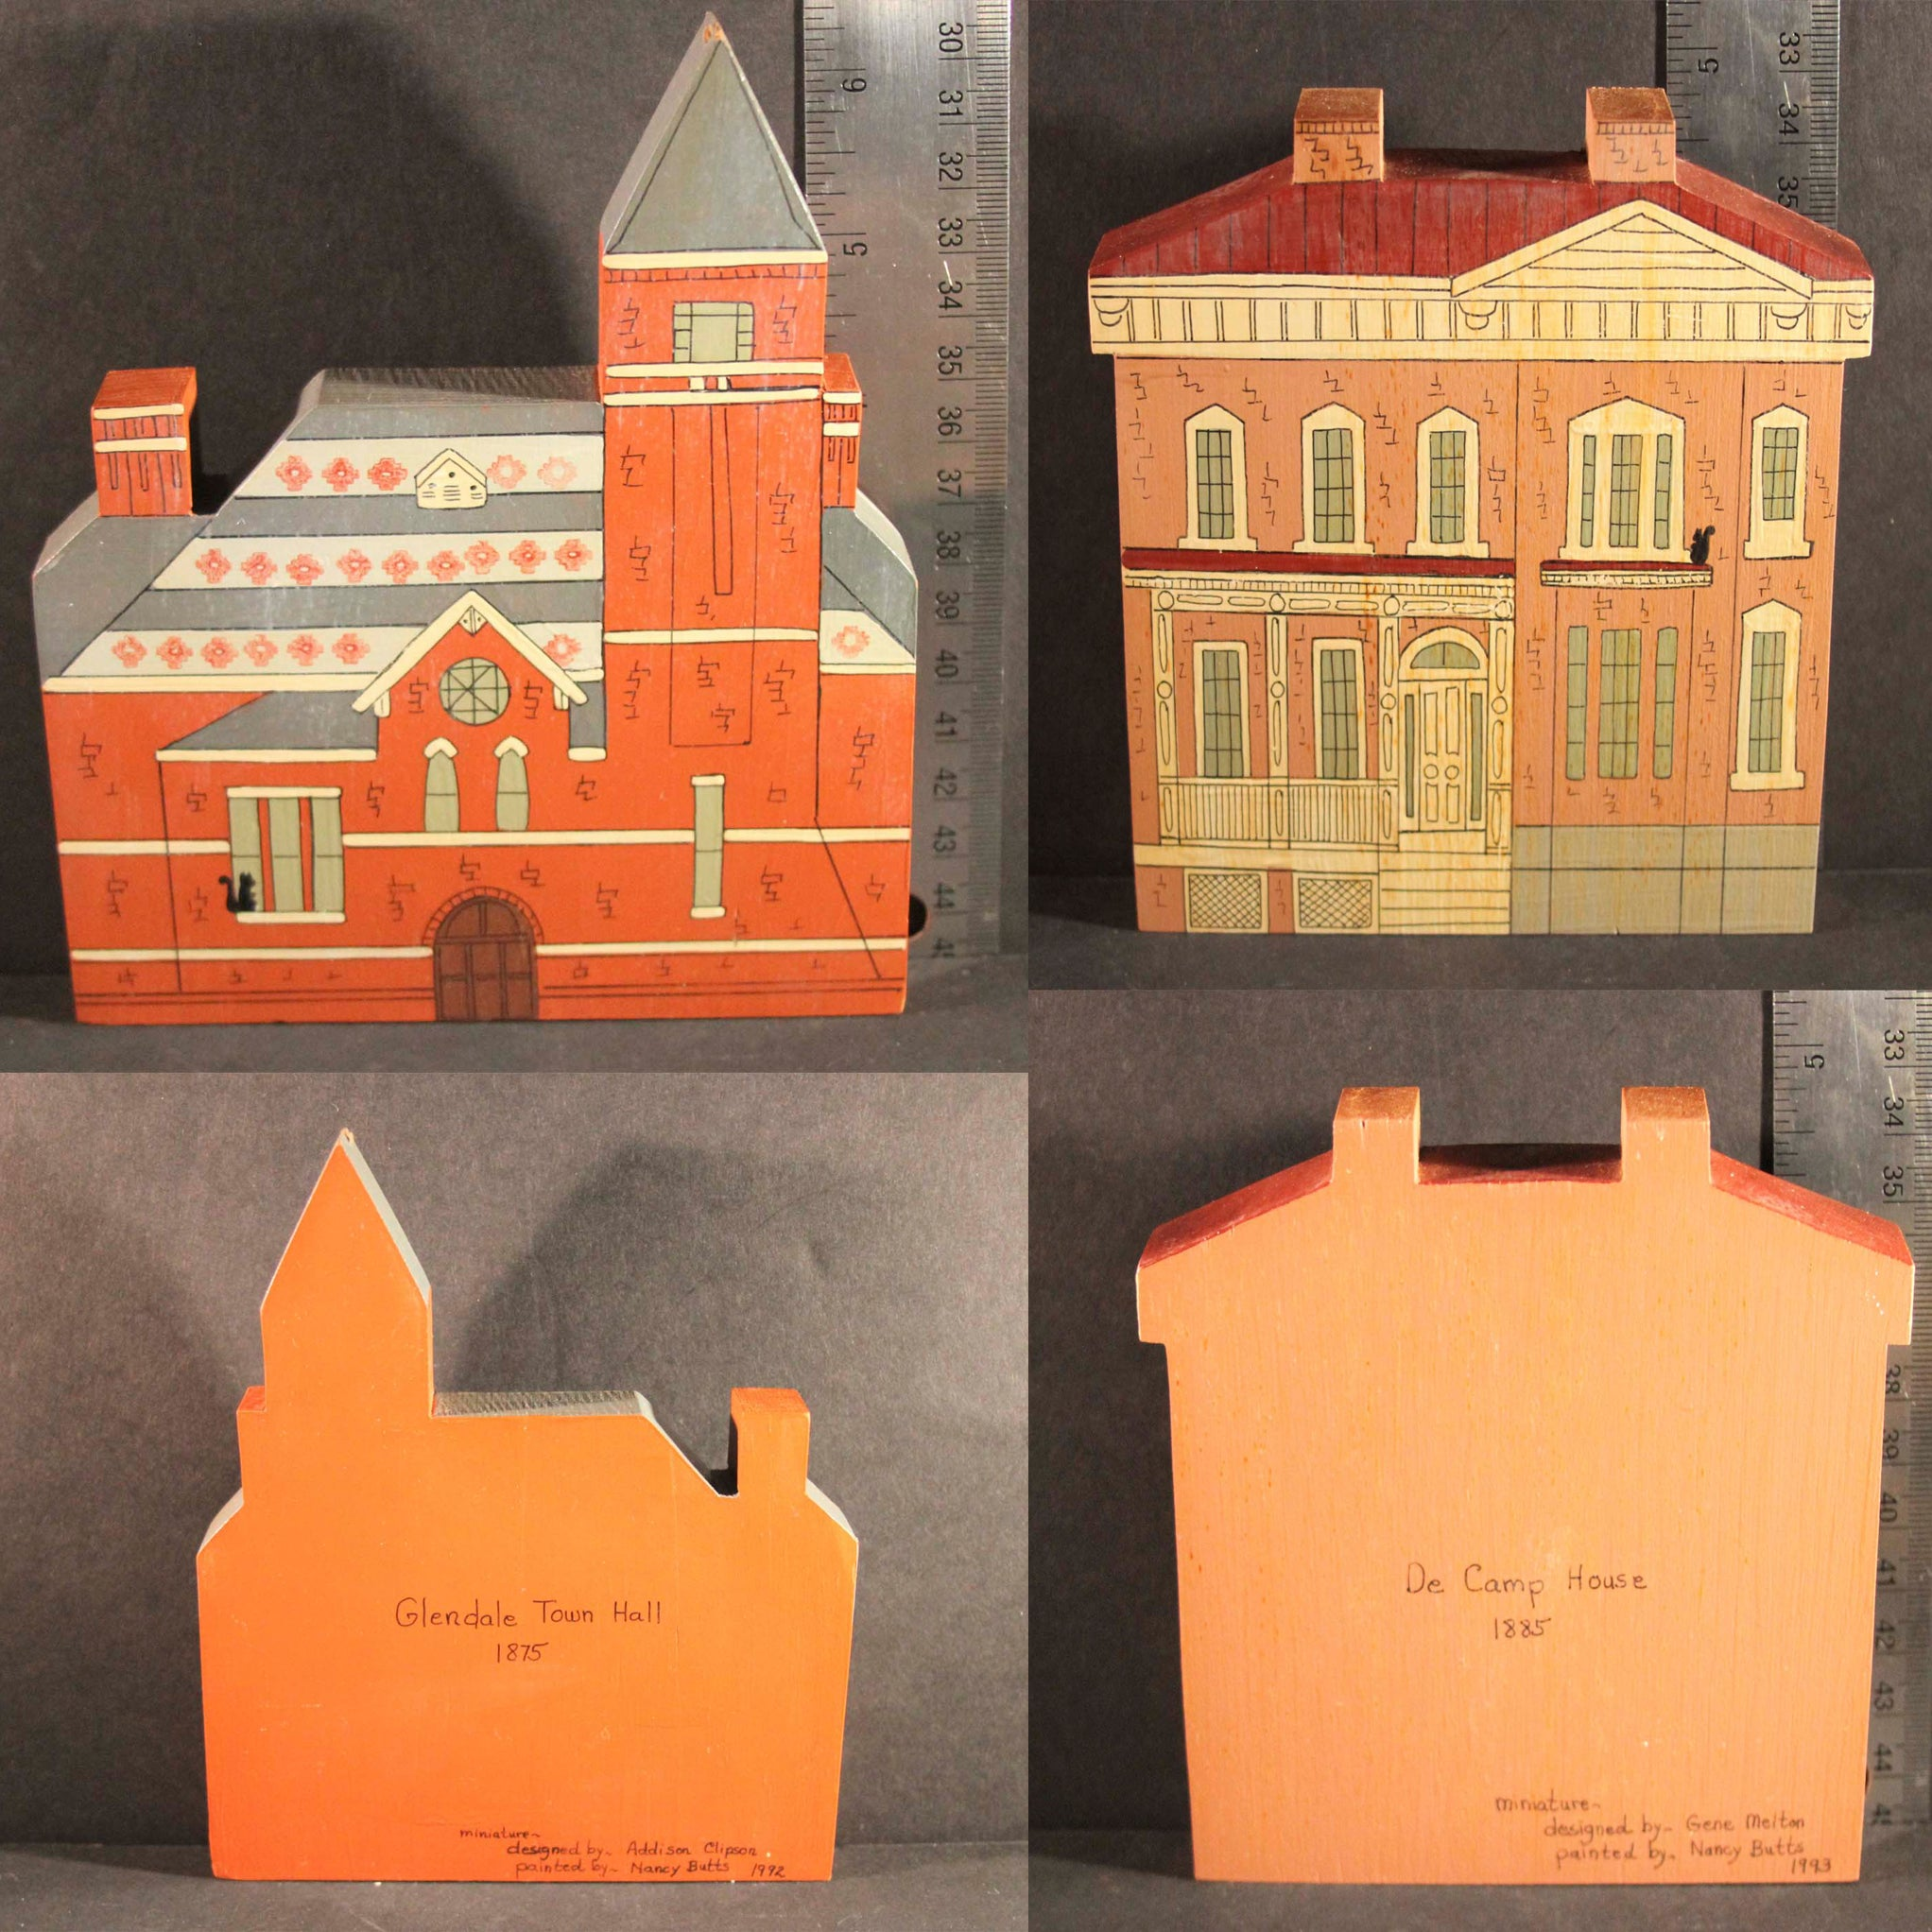 GLENDALE OHIO HISTORIC LANDMARKS MINIATURES Limited Edition Glendale Town Hall 1875 De Camp House 1885